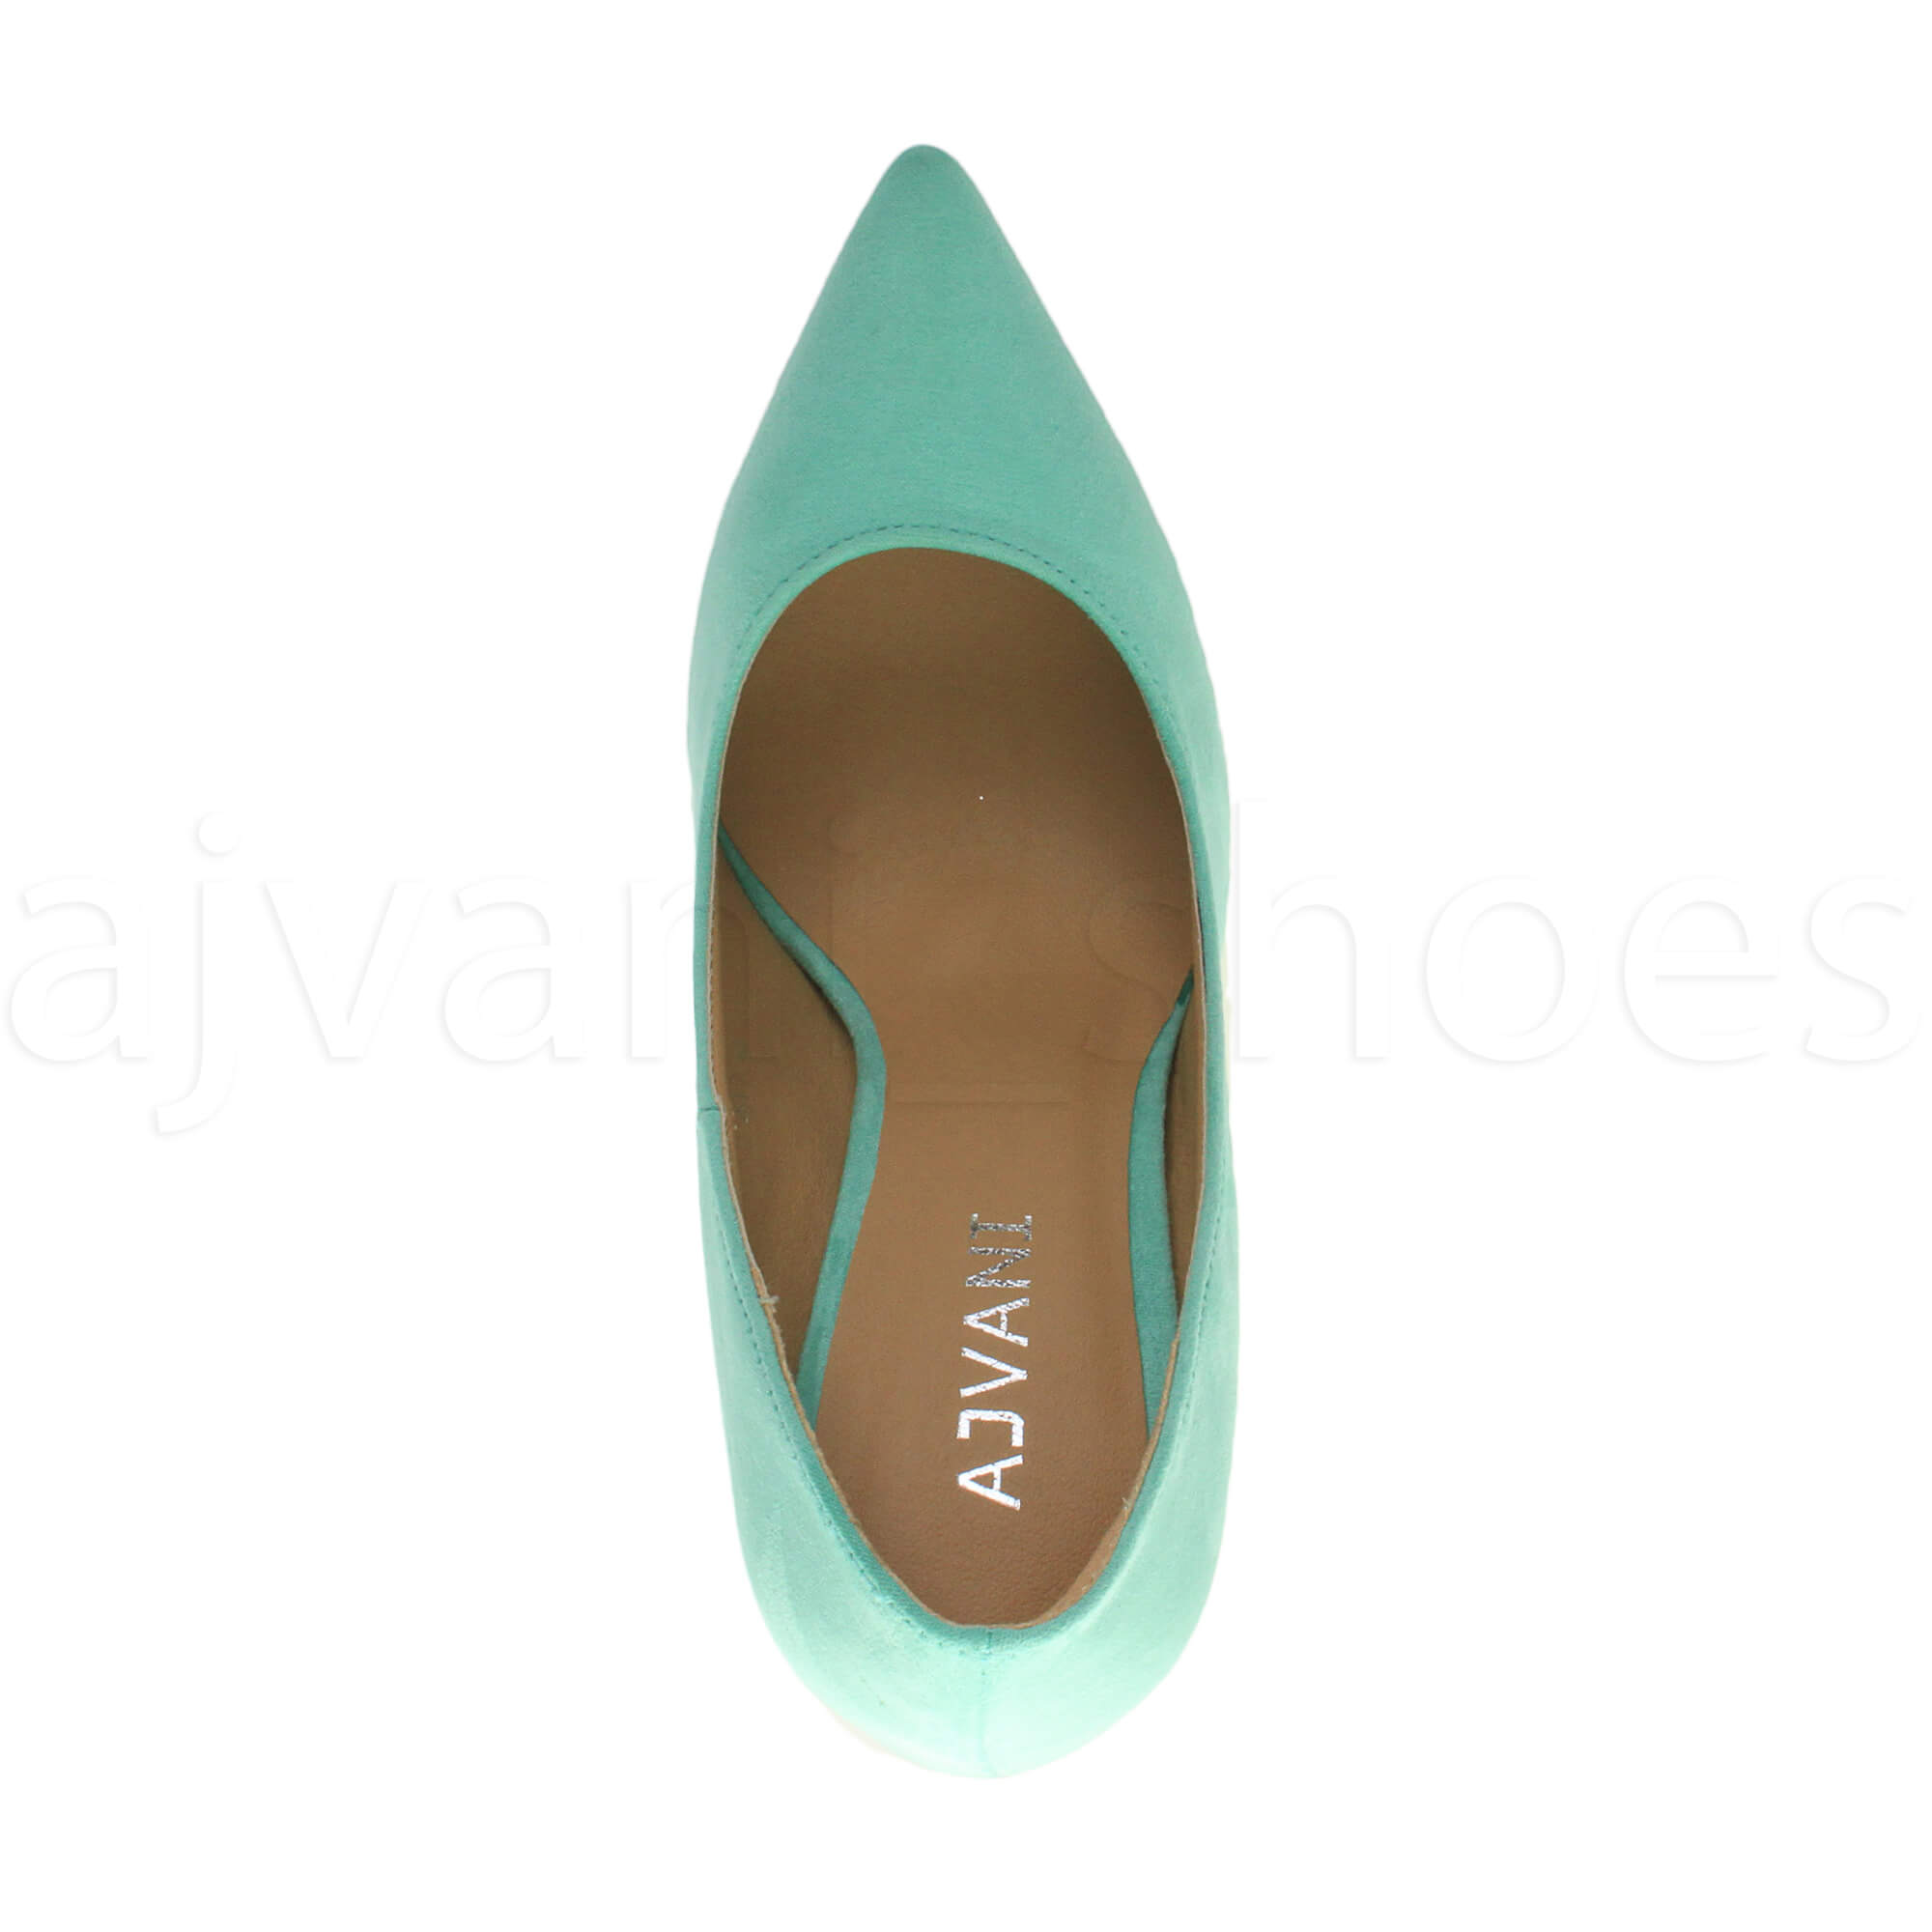 WOMENS-LADIES-HIGH-HEEL-POINTED-CONTRAST-COURT-SMART-PARTY-WORK-SHOES-PUMPS-SIZE thumbnail 150